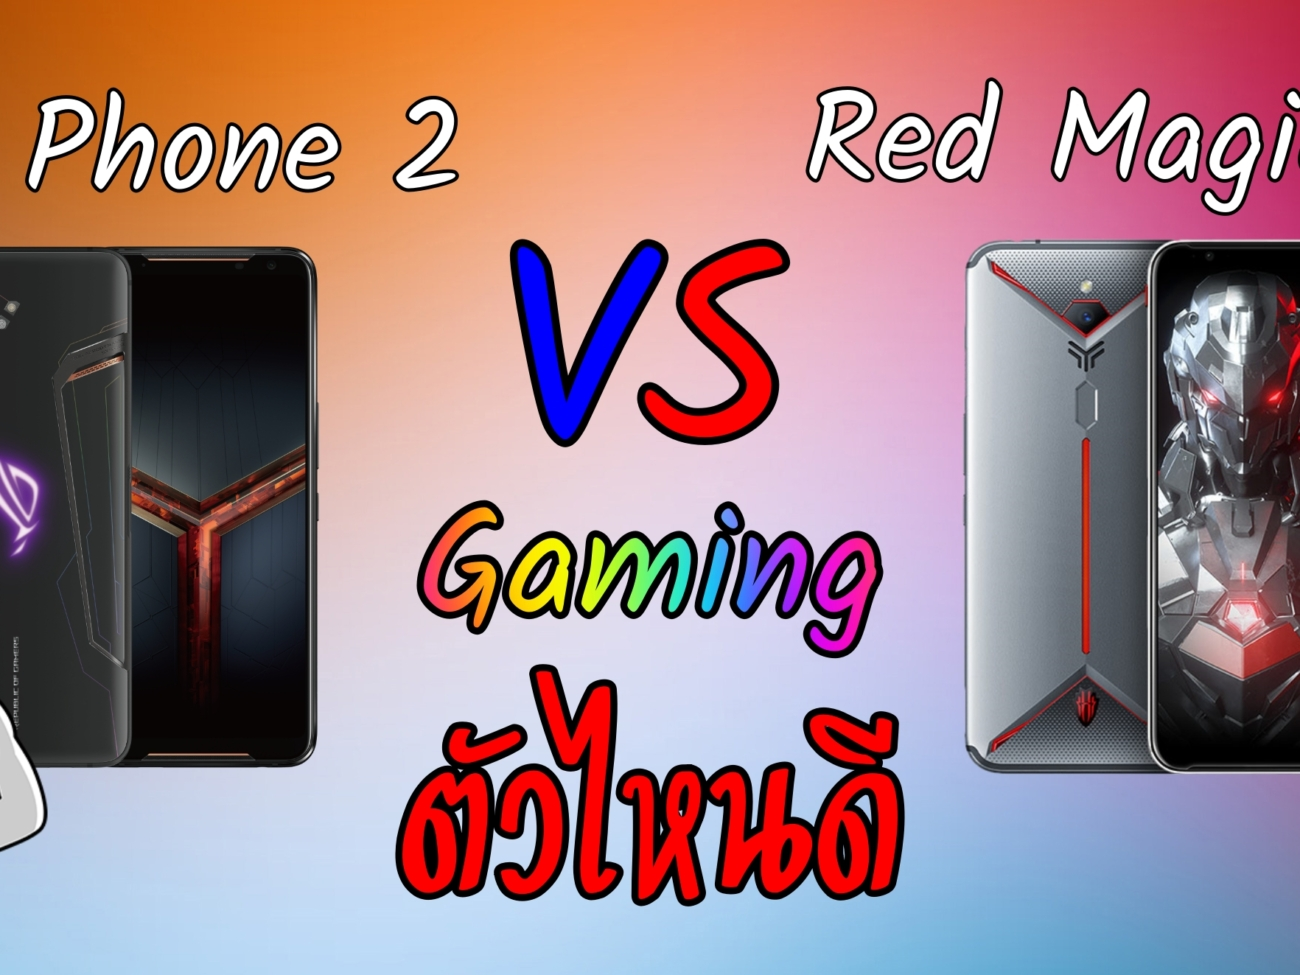 rog2-vs-red3s-cover-1